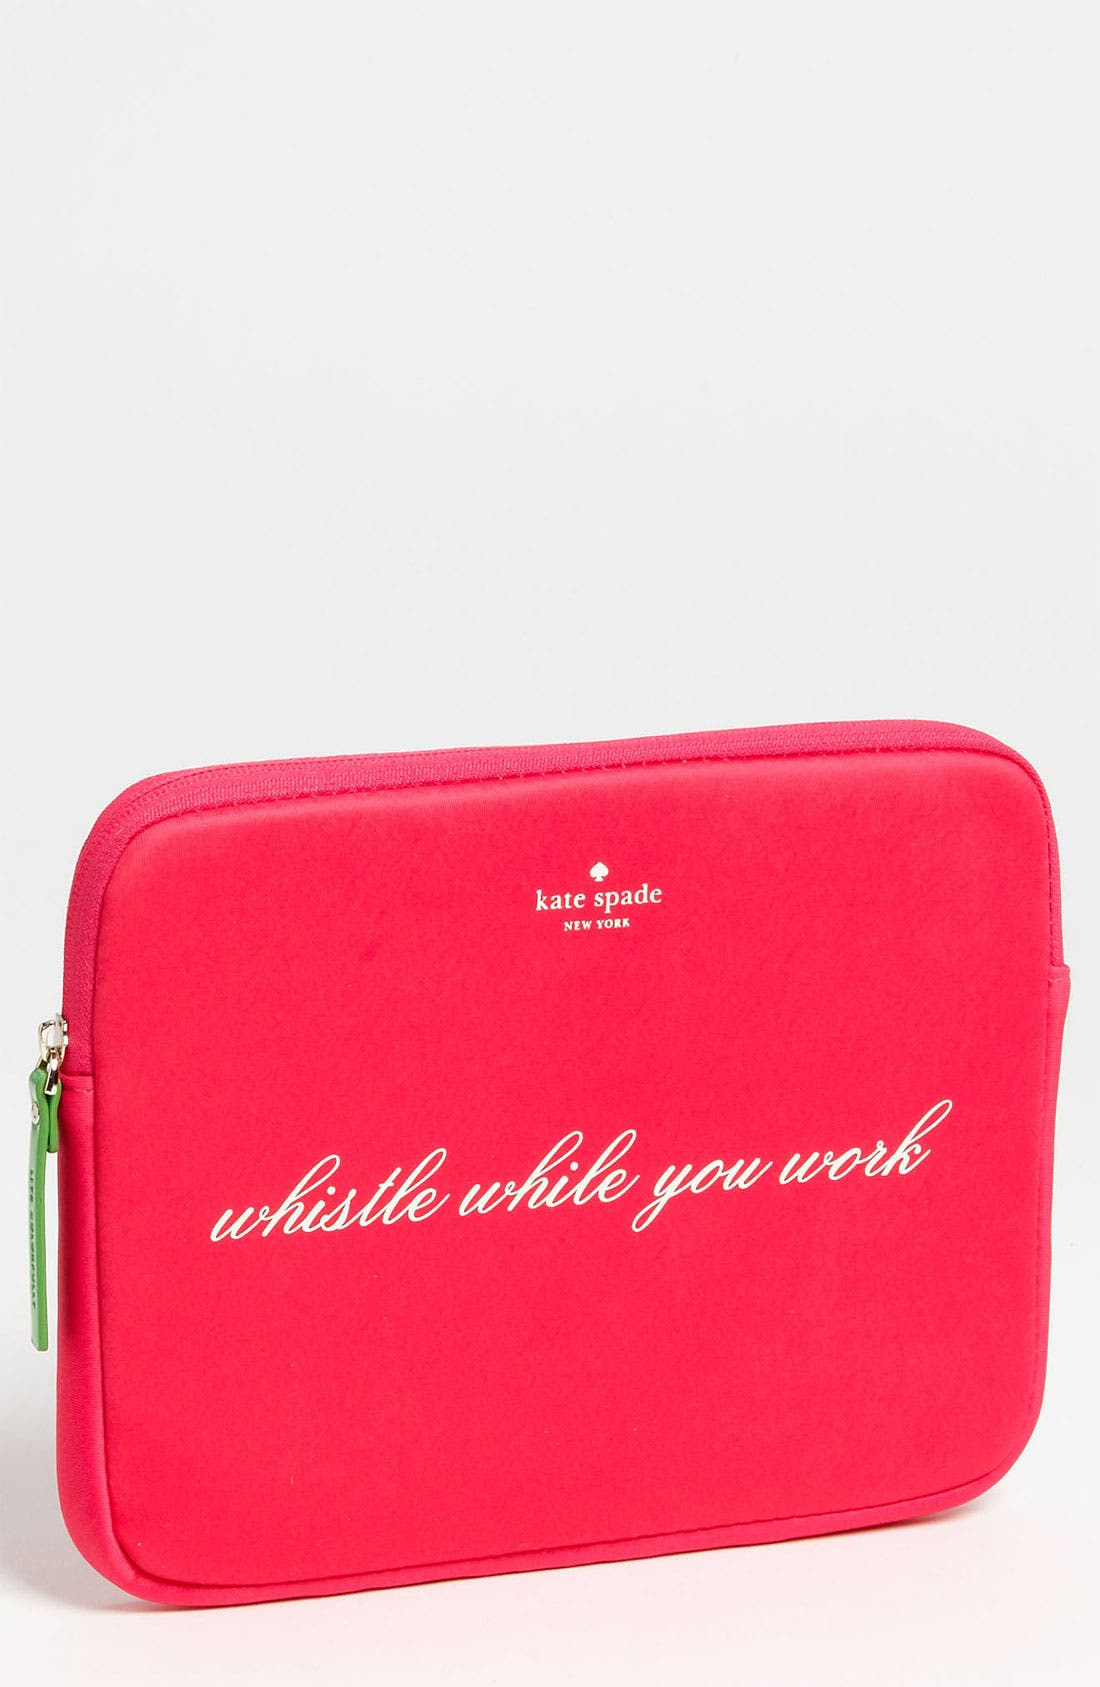 Alternate Image 1 Selected - kate spade new york 'whistle while you work' iPad sleeve